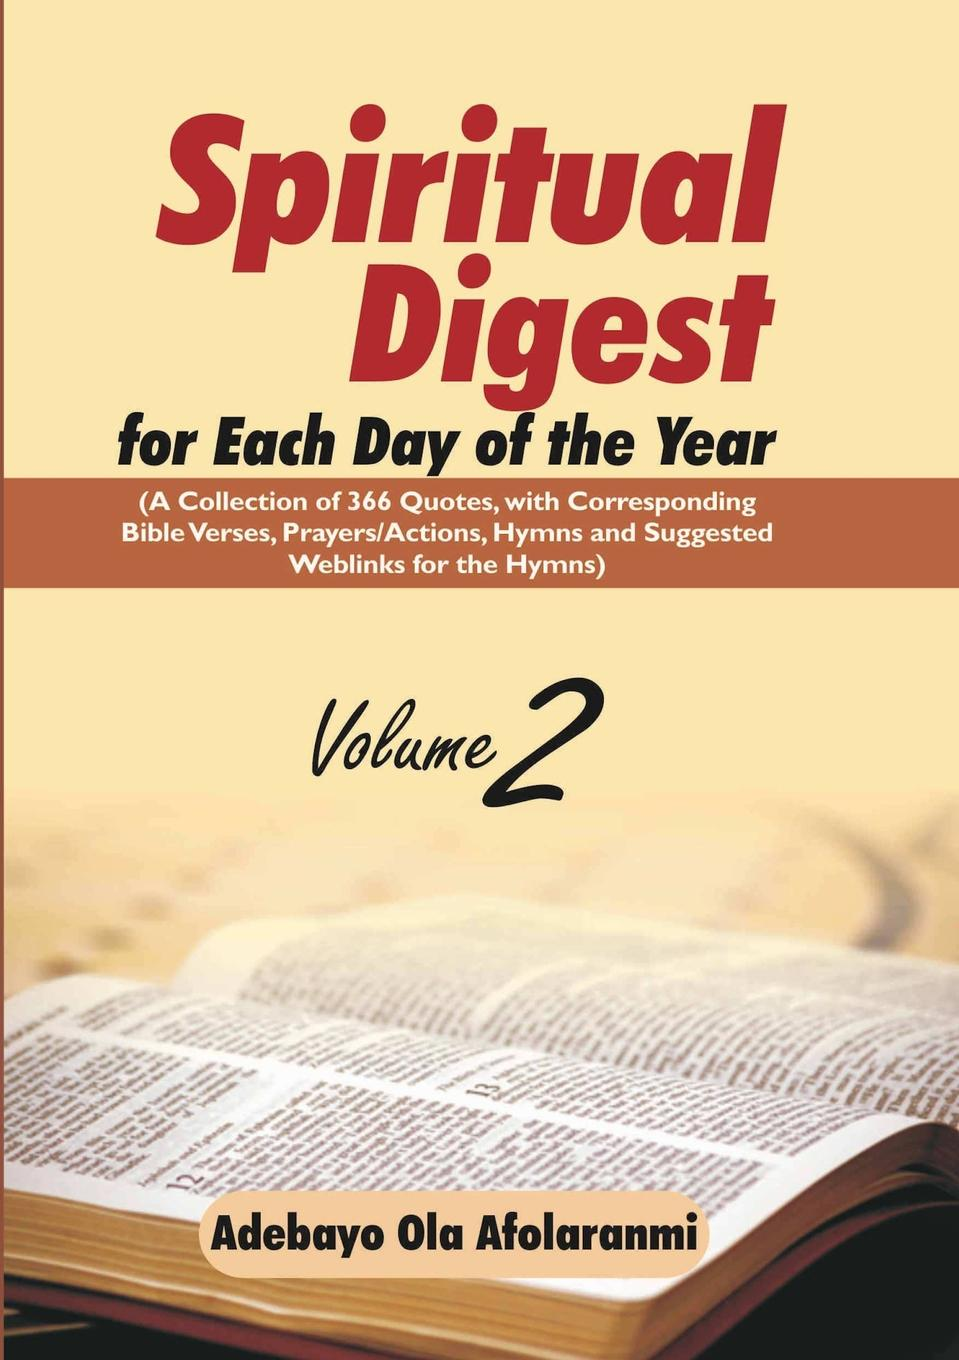 Adebayo Ola Afolaranmi Spiritual Digest for Each Day of the Year (A Collection of 366 Bible Verses, with Corresponding Quotes, Prayers/Actions, Hymns and Suggested Weblinks for the Hymns) Volume Two church of the brethren a collection of psalms hymns and spiritual songs